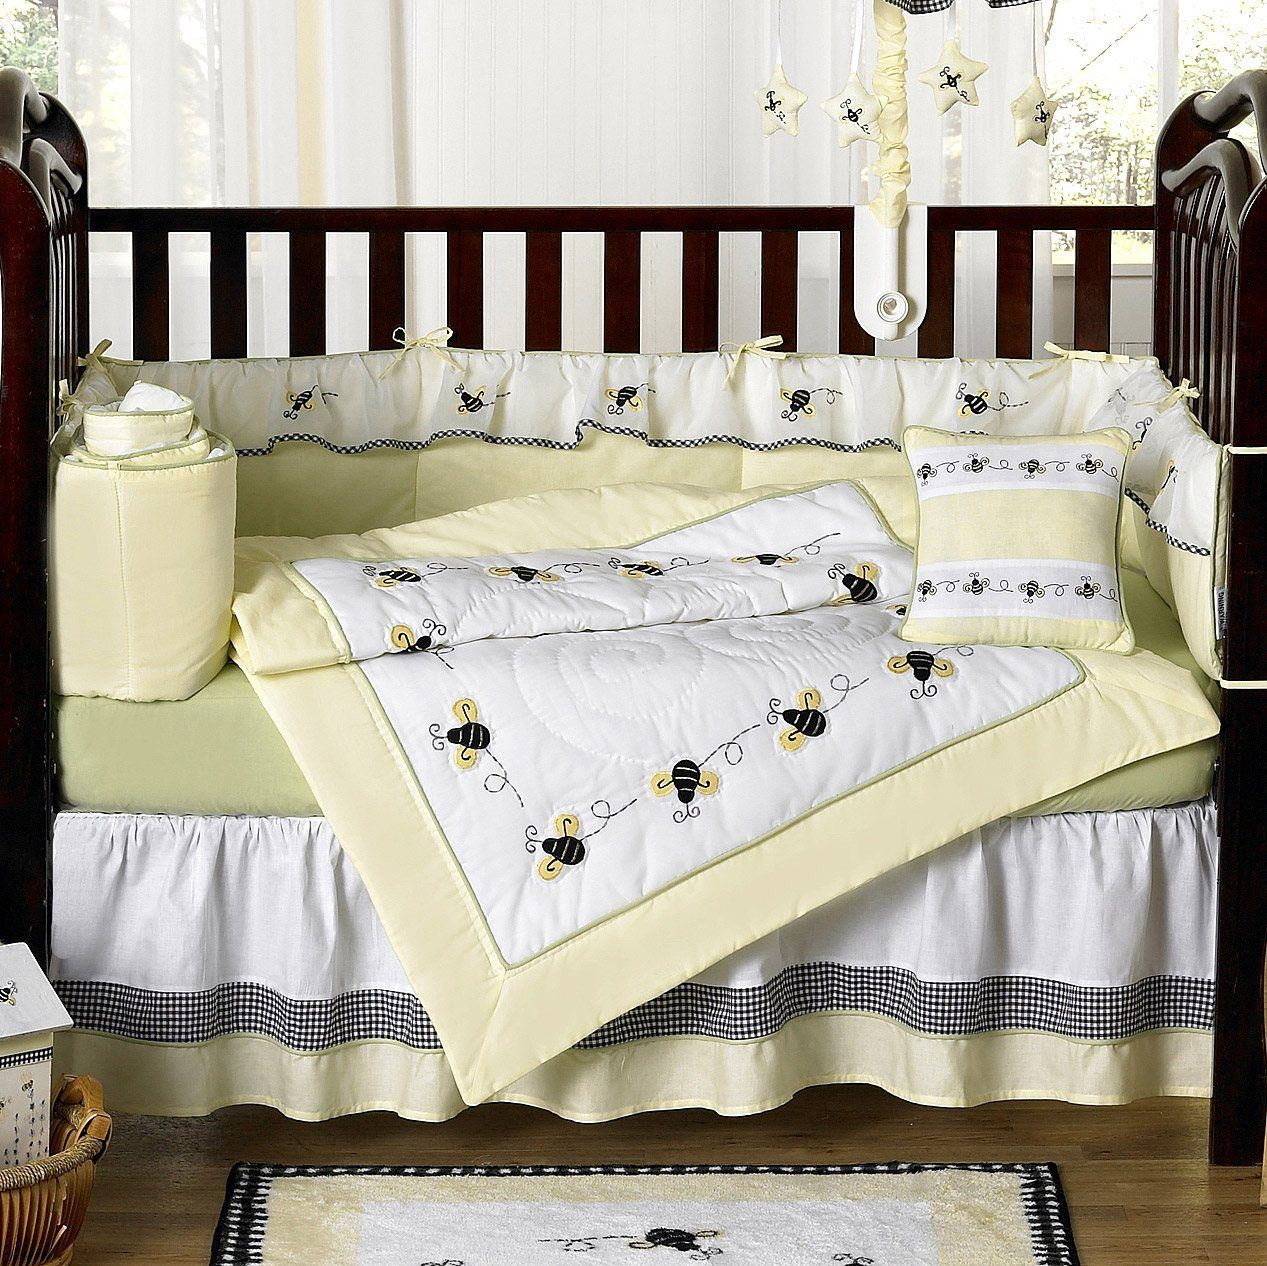 Cute Bumble Bee Nursery Set Unique Baby Bedding Baby Bed Baby Crib Sets